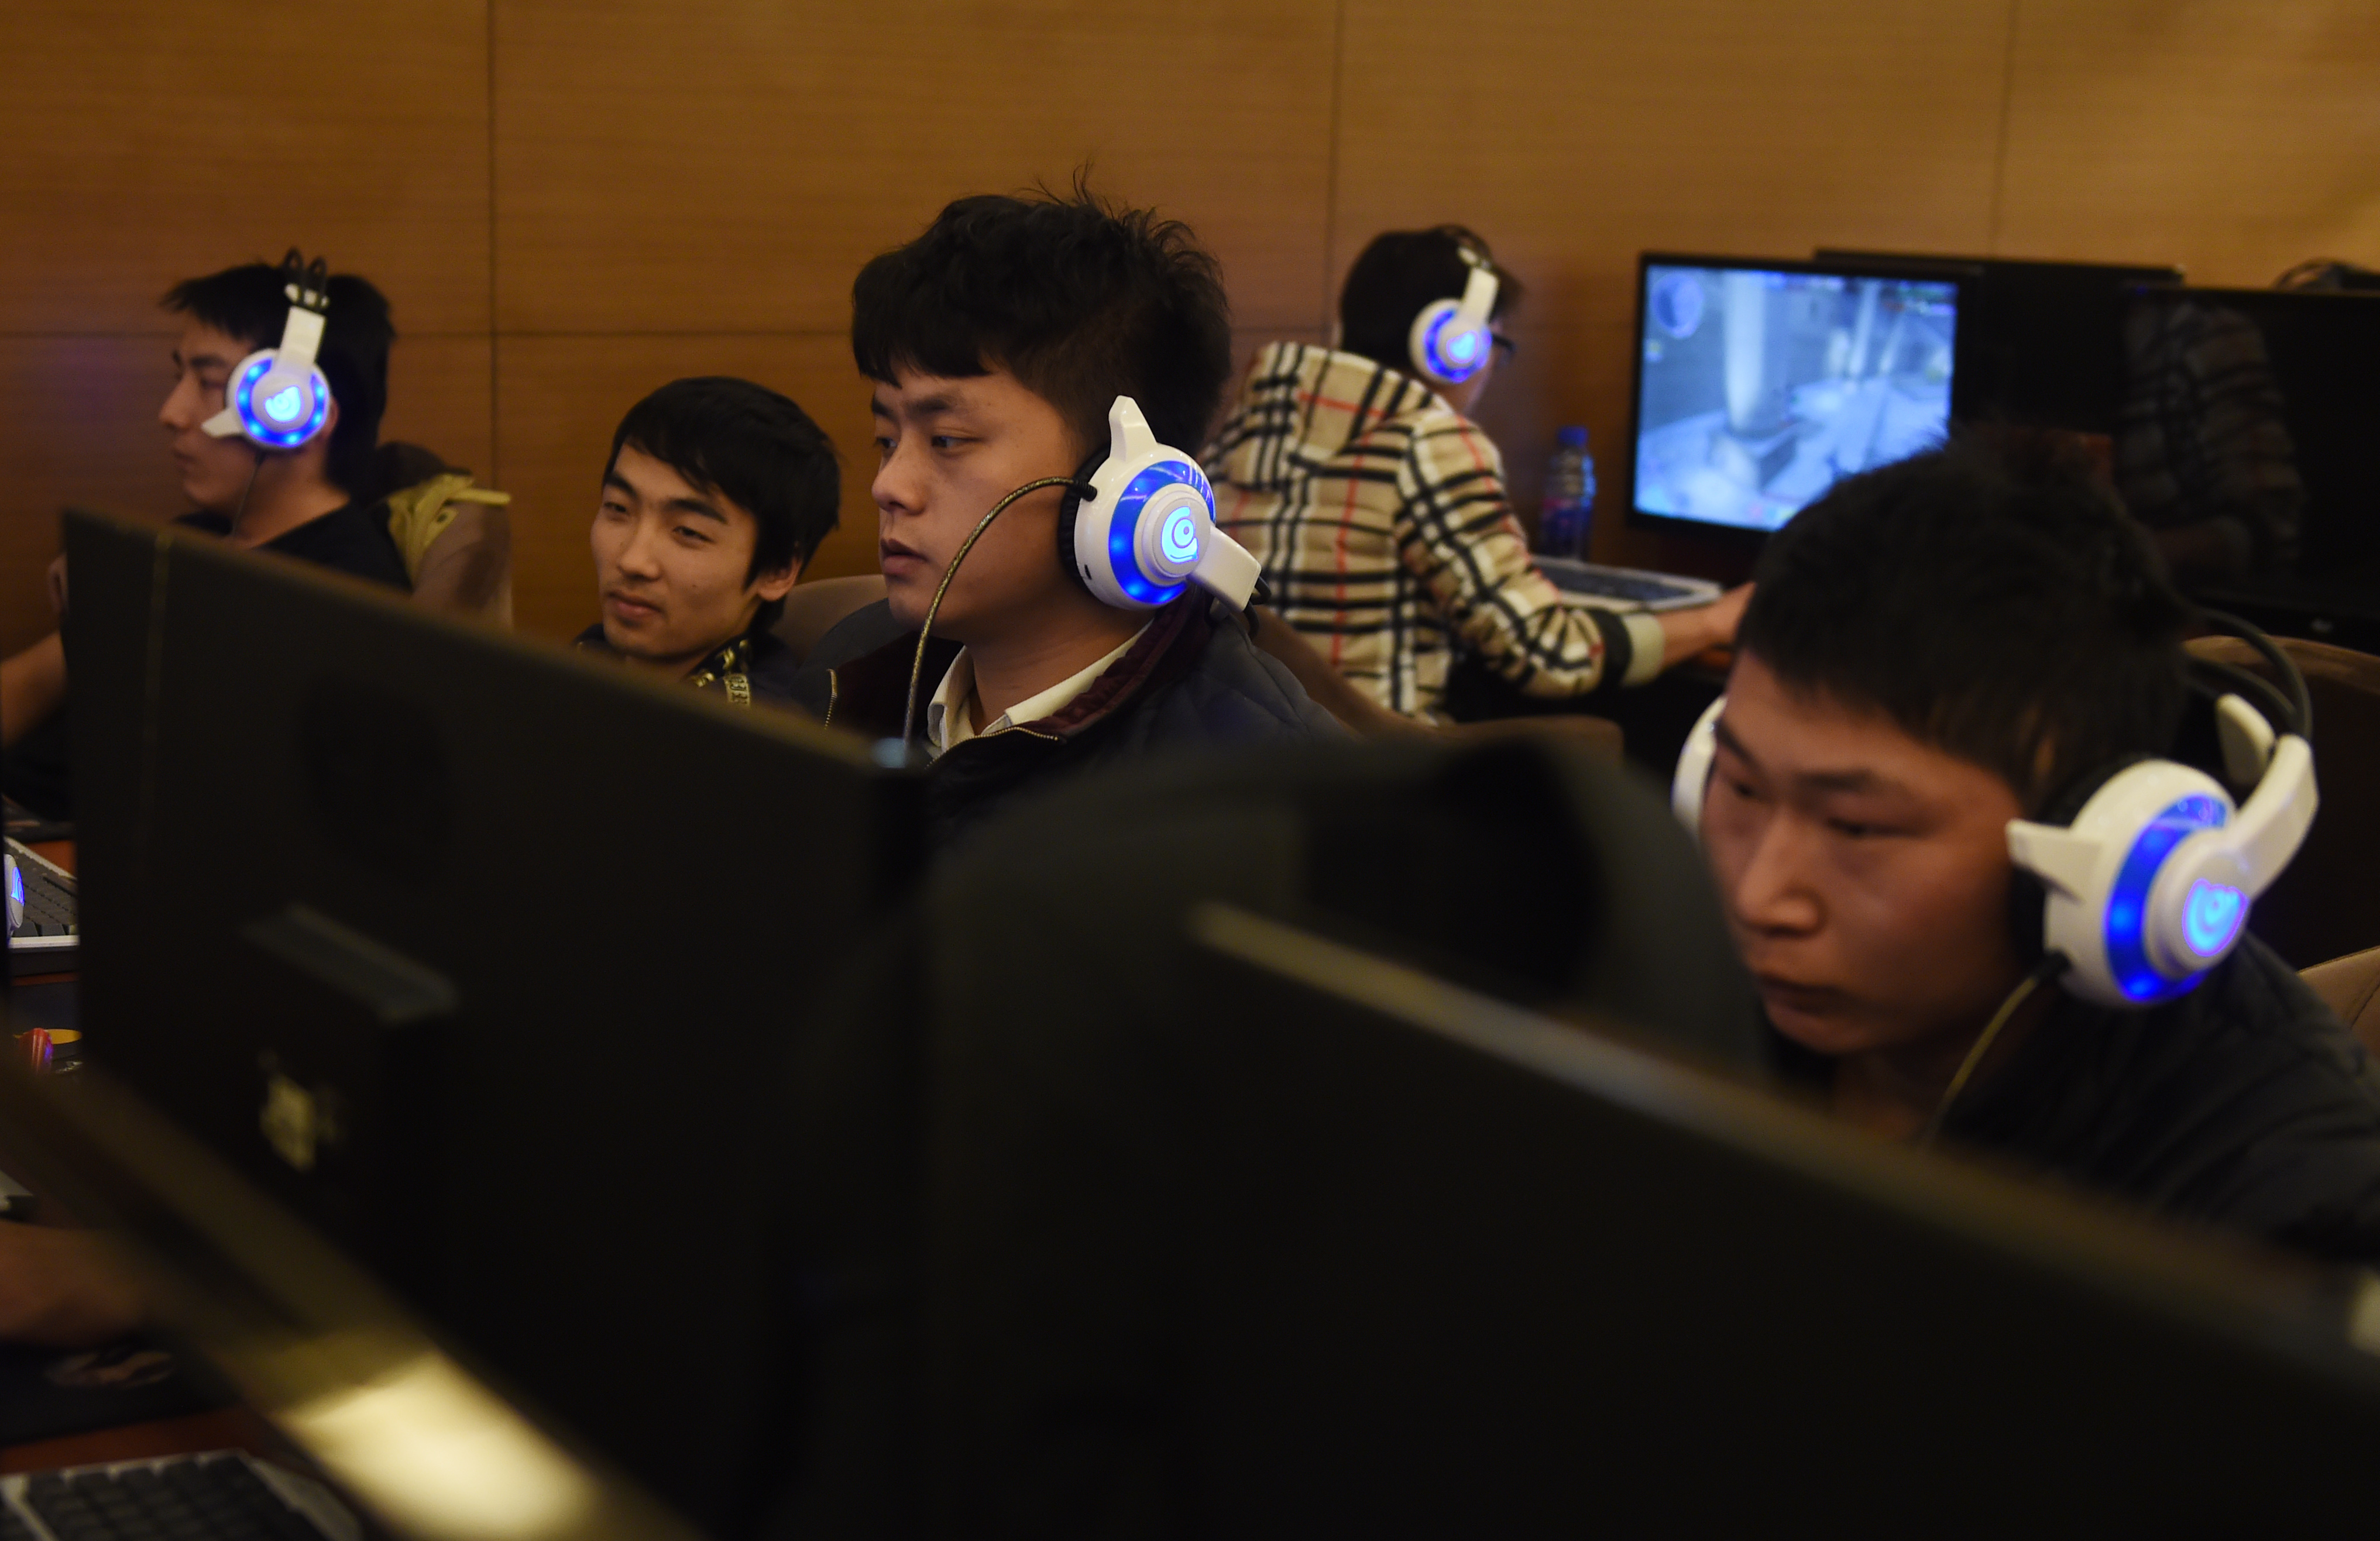 FILE - Young men sit at computers at an internet cafe in Beijing, China, Dec. 16, 2015.